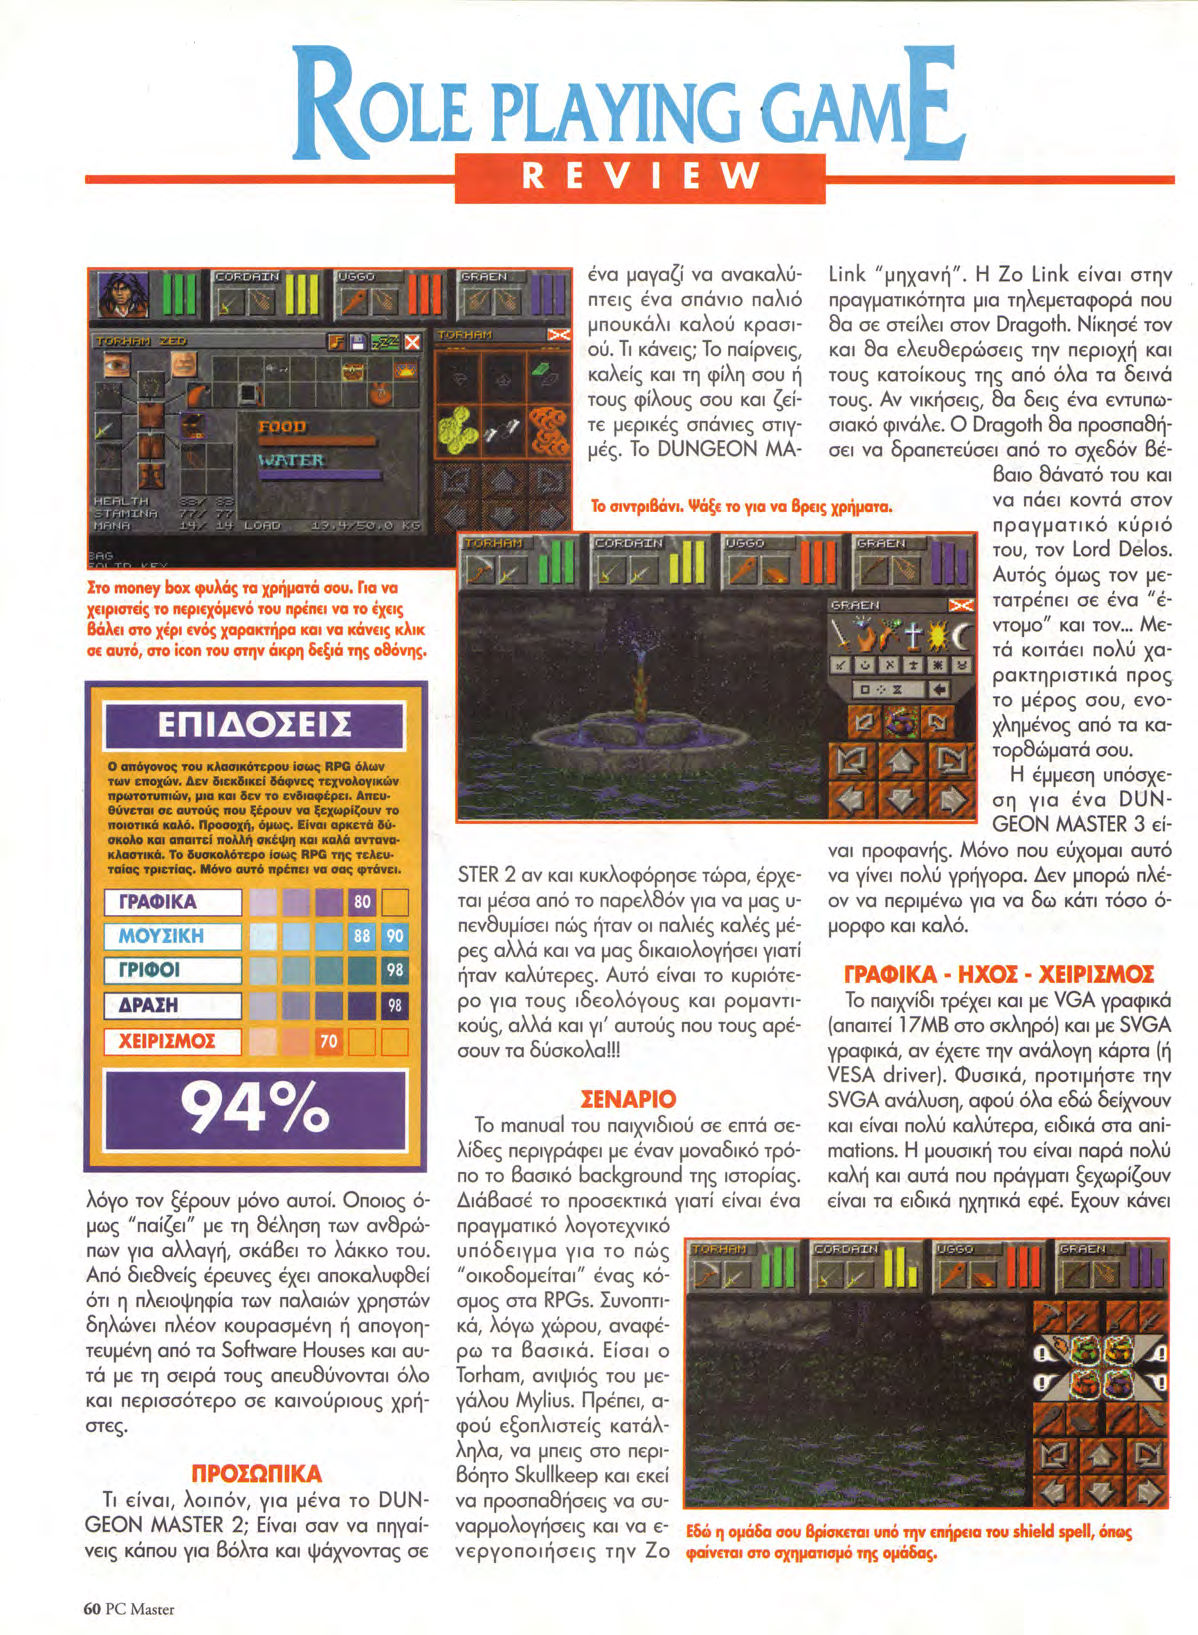 Dungeon Master II for PC Review published in Greek magazine 'PC Master', Issue #67 November 1995, Page 60